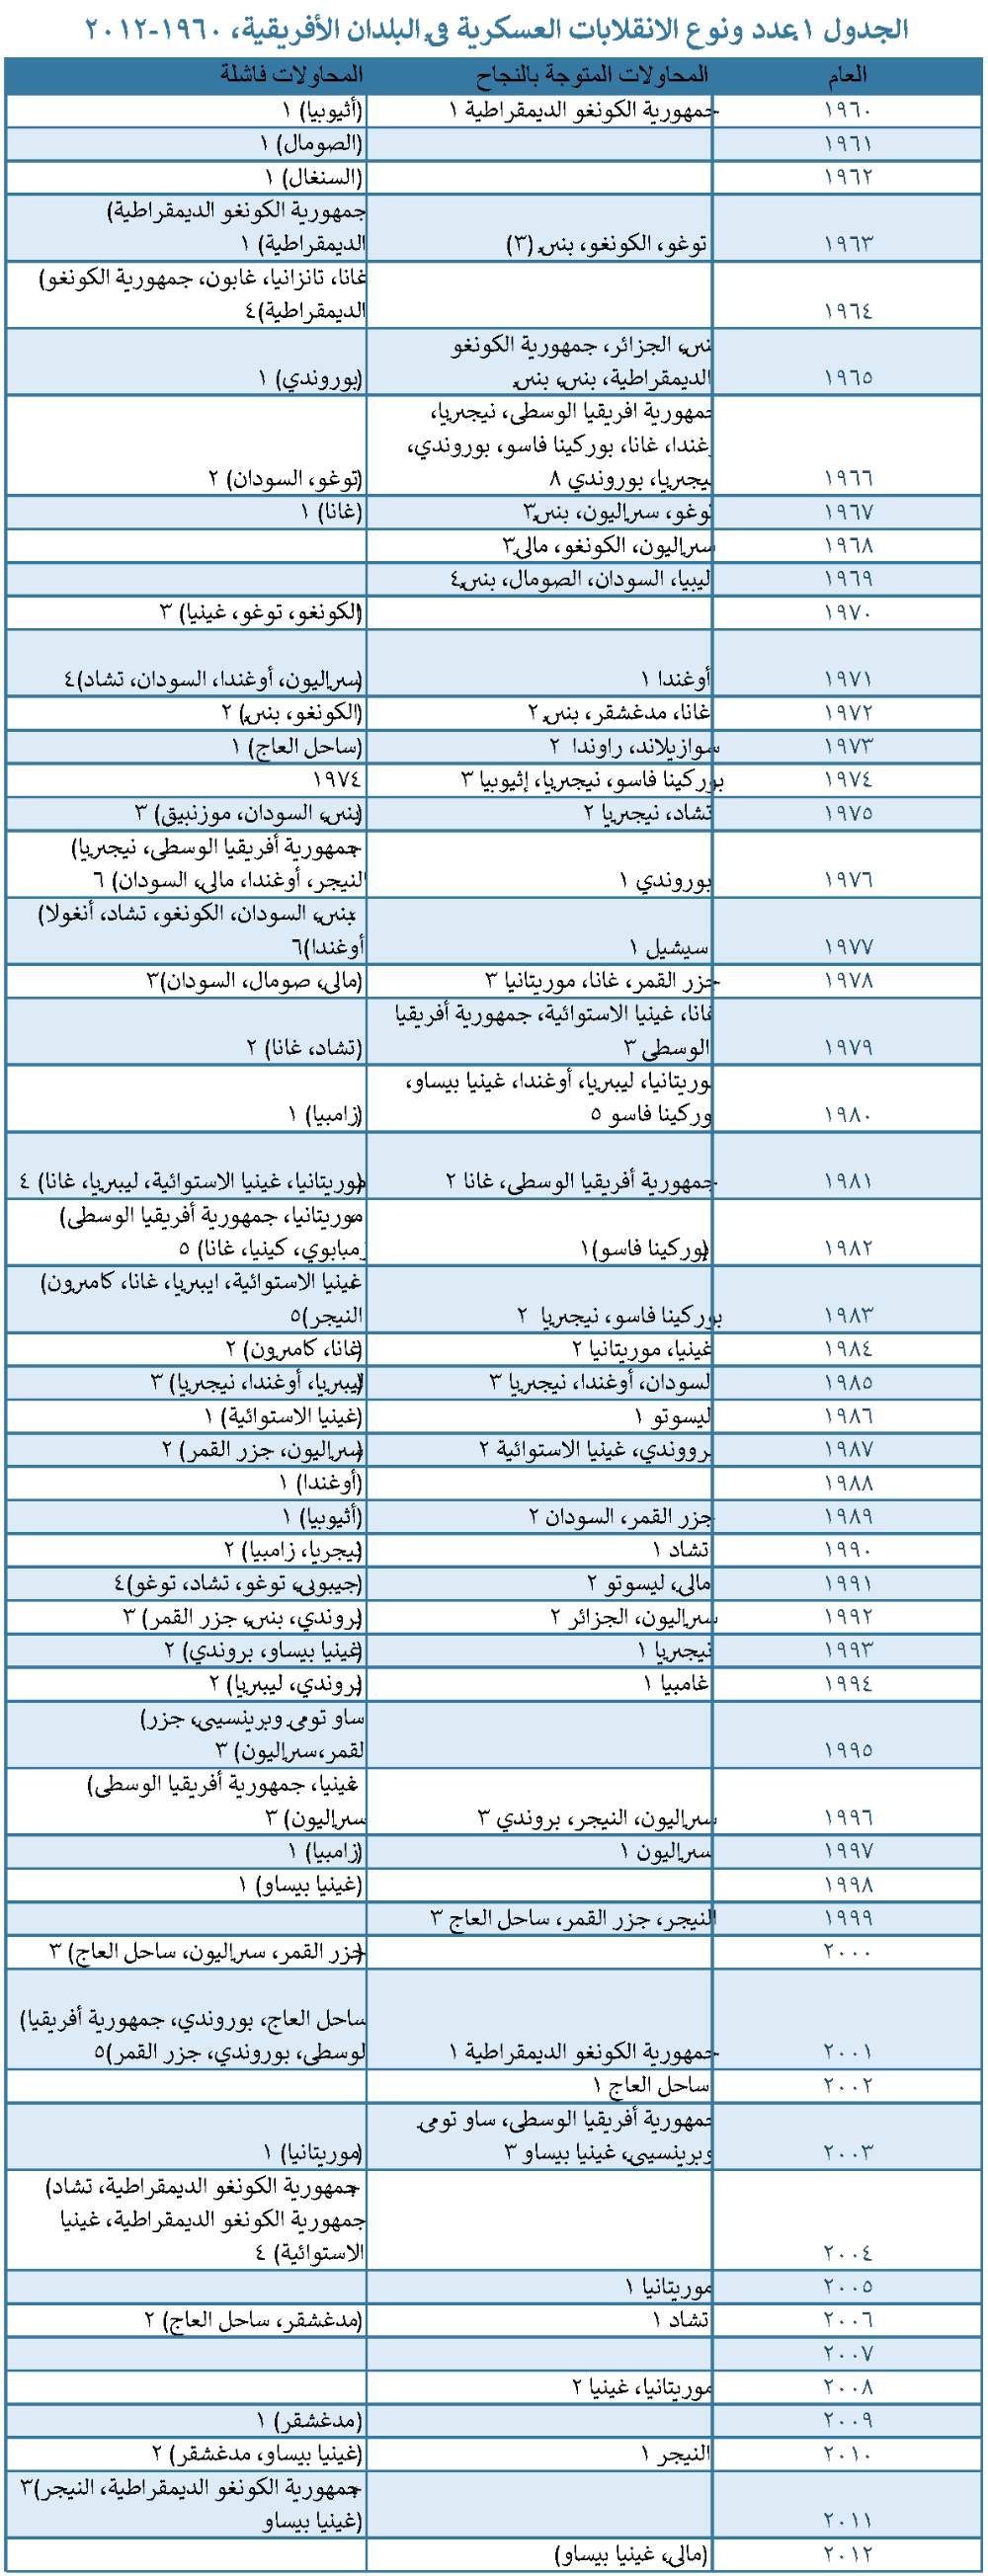 ARP6 AR Table 1 - Number & Type of Military Coups in African Countries, 1960-2012